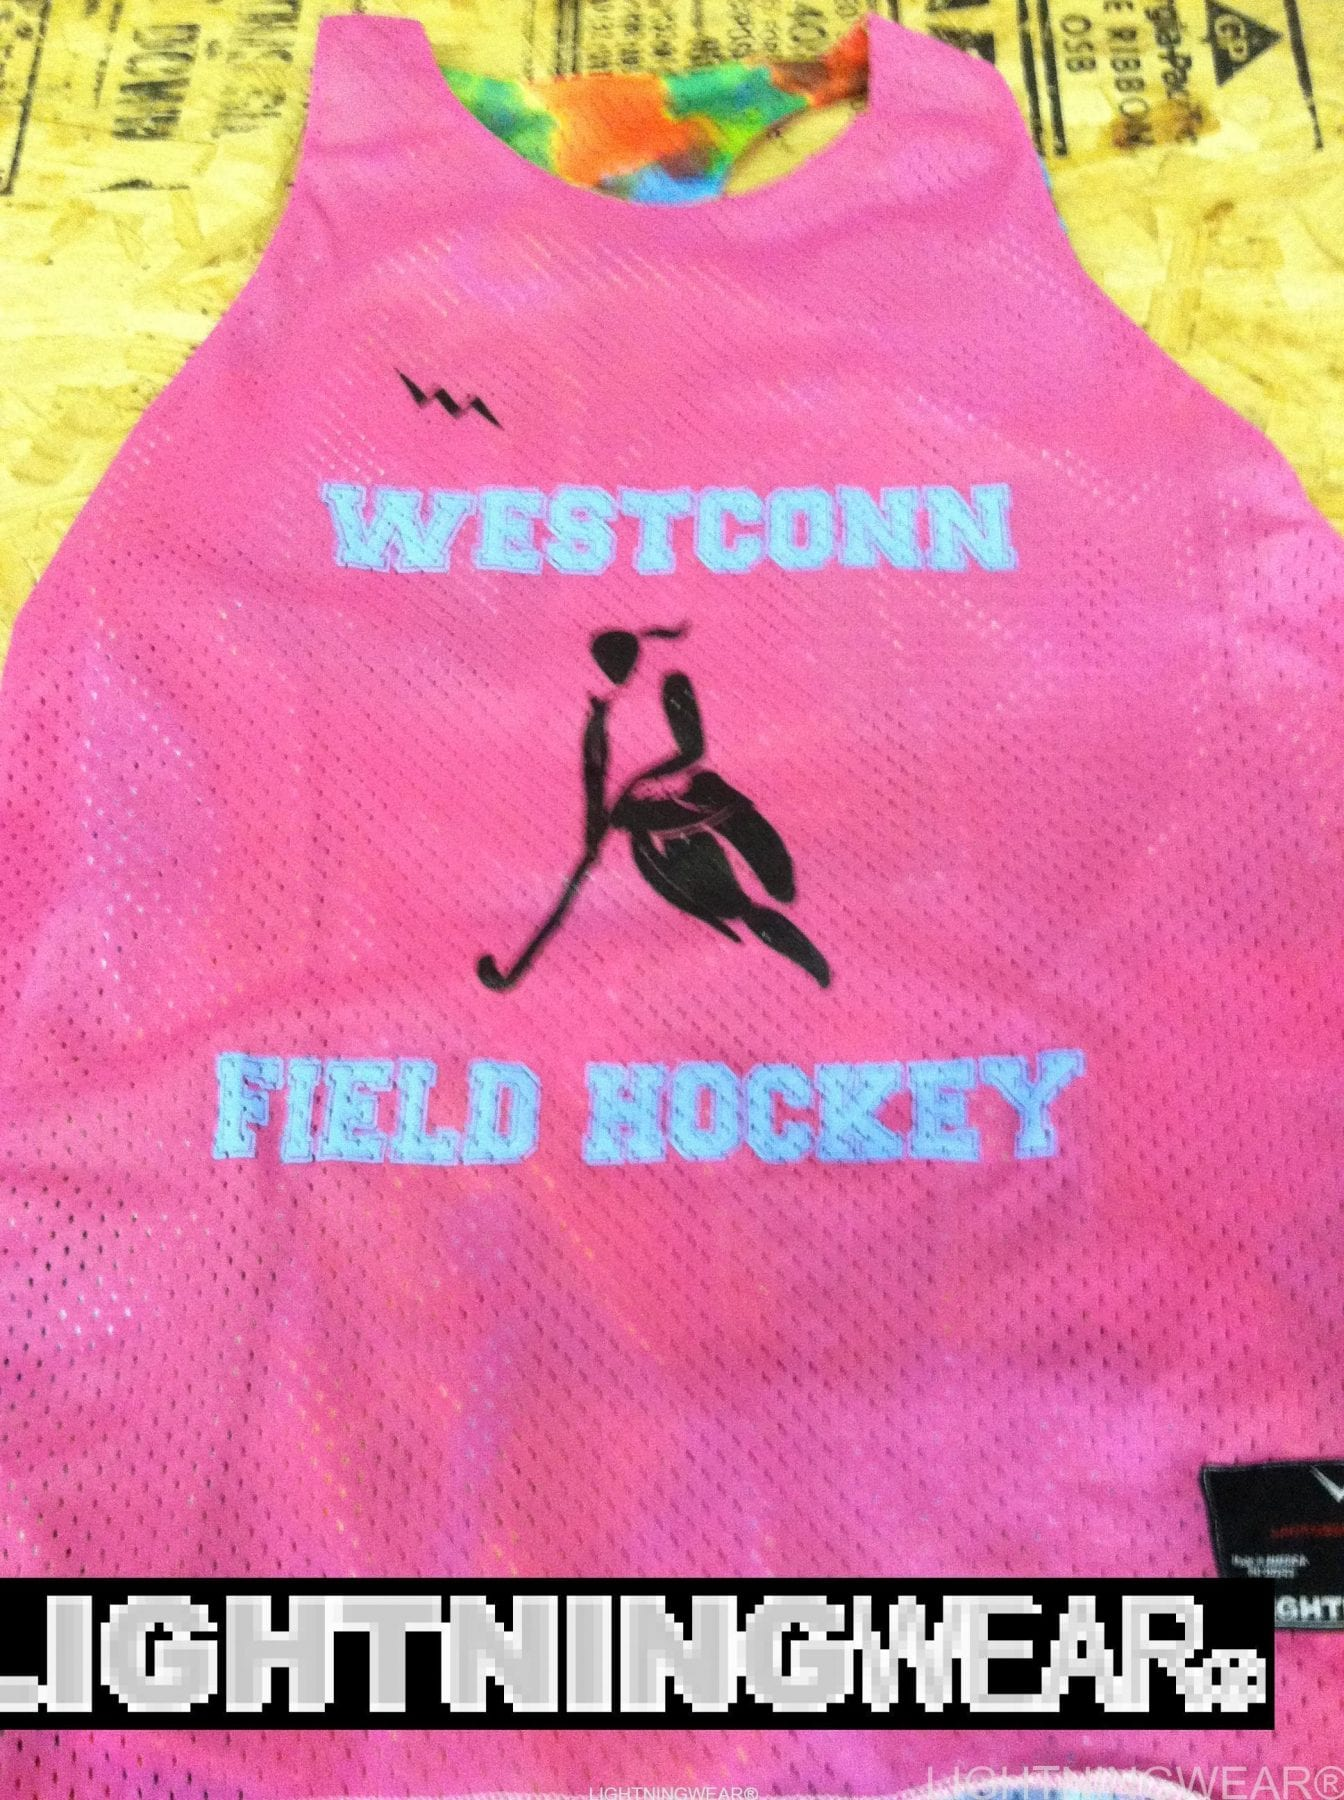 westconn field hockey pinnies racerback